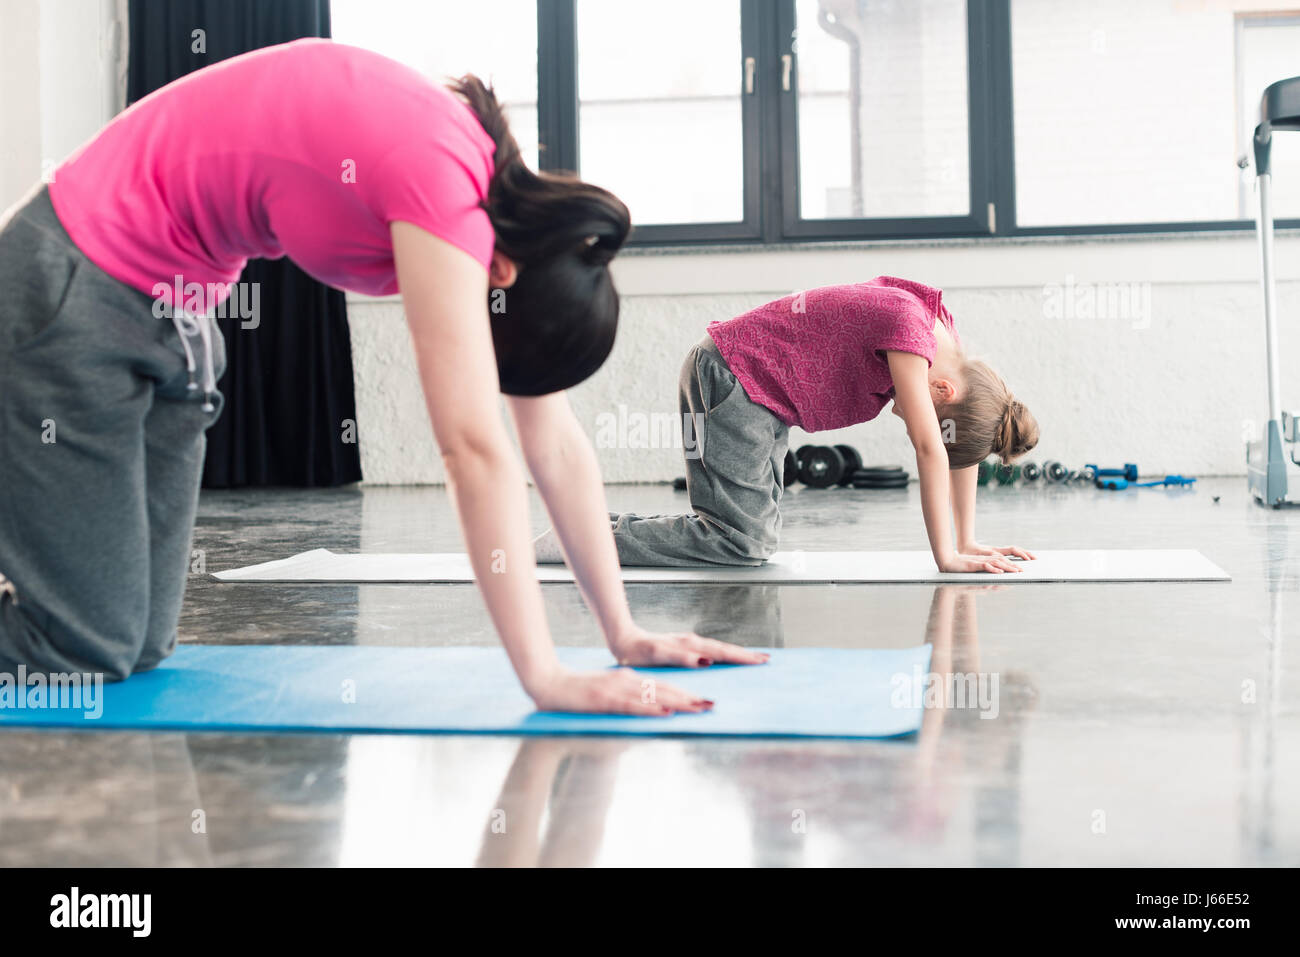 mother and daughter in pink shirts practicing yoga in Cat pose in gym - Stock Image